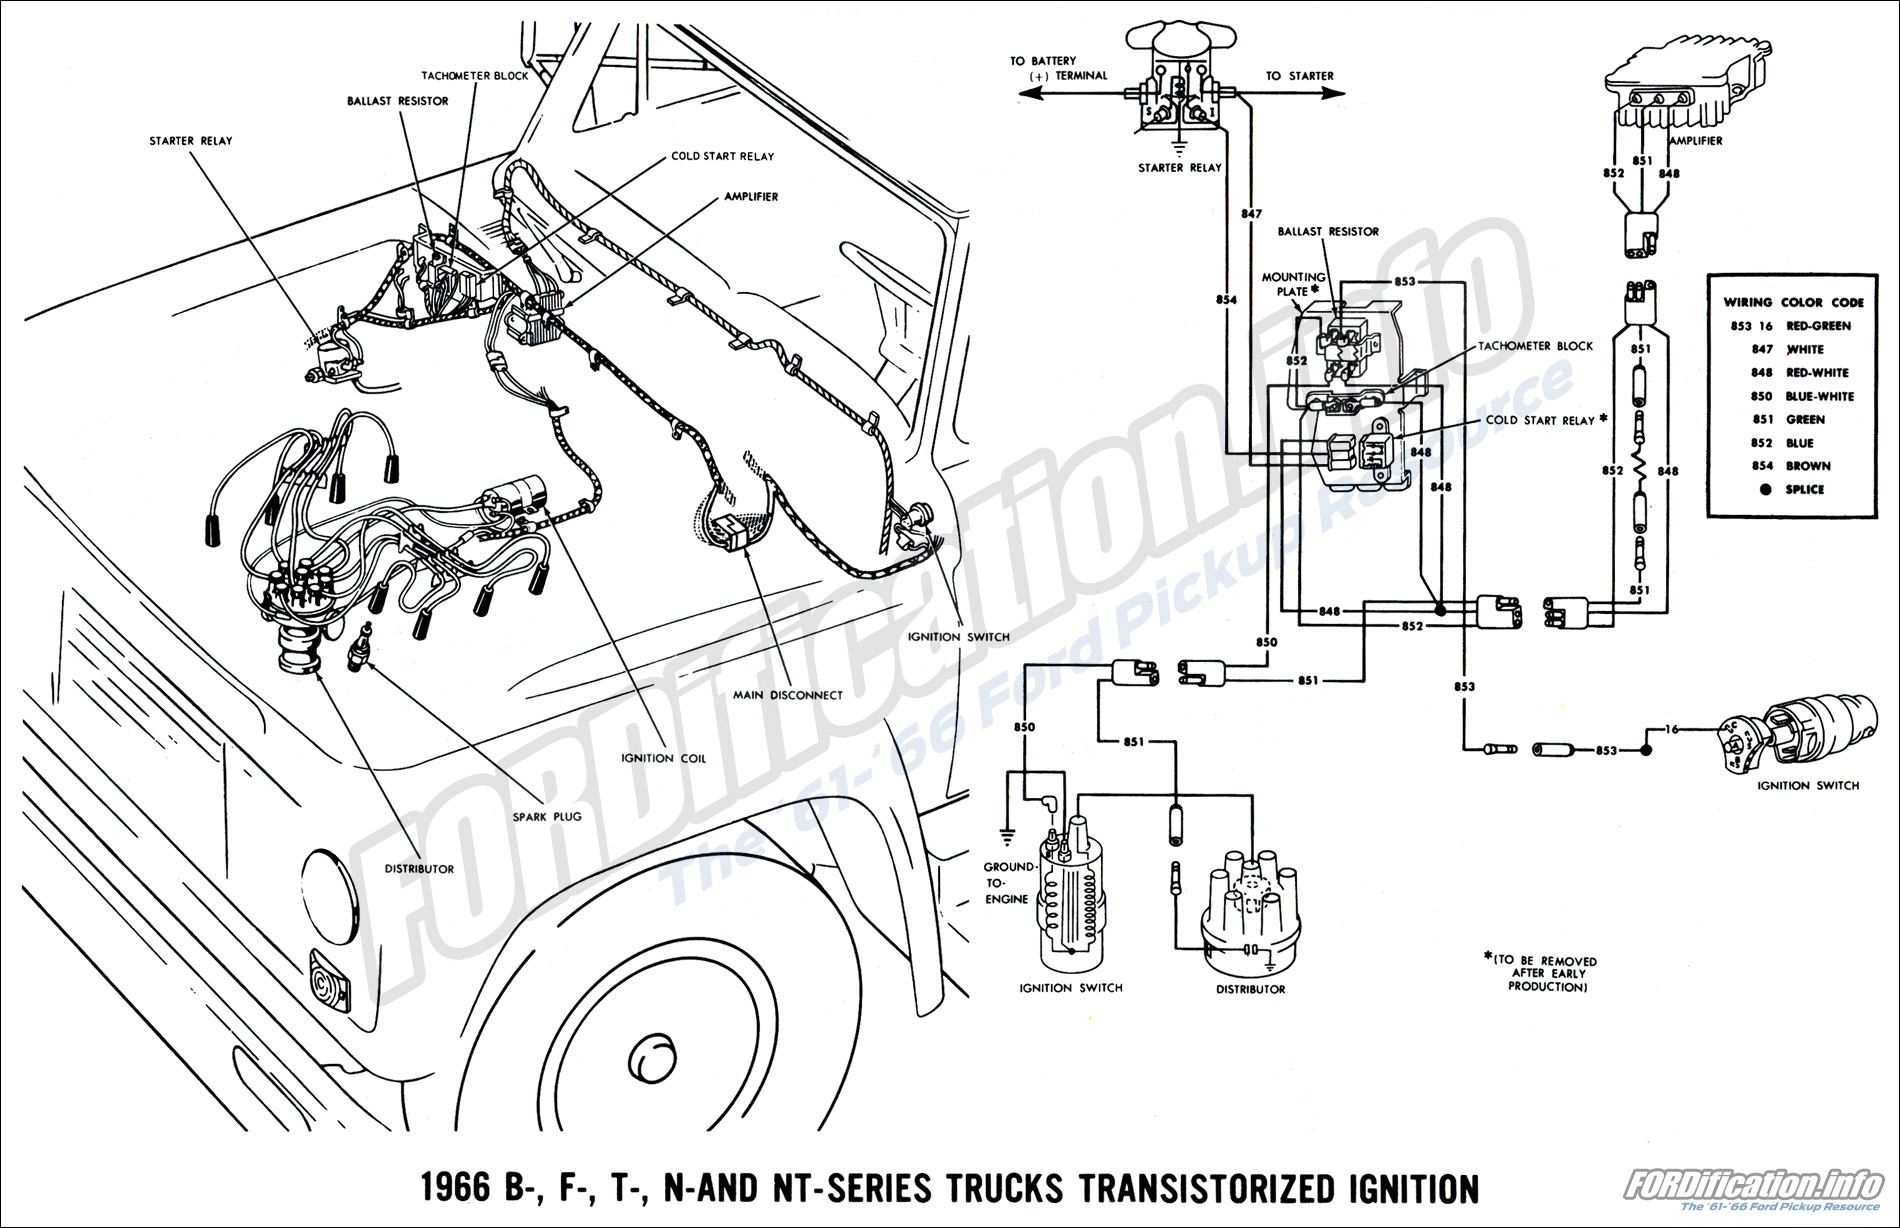 66transistorizedignition 1966 ford truck wiring diagrams fordification info the '61 '66 1966 ford truck wiring diagram at nearapp.co